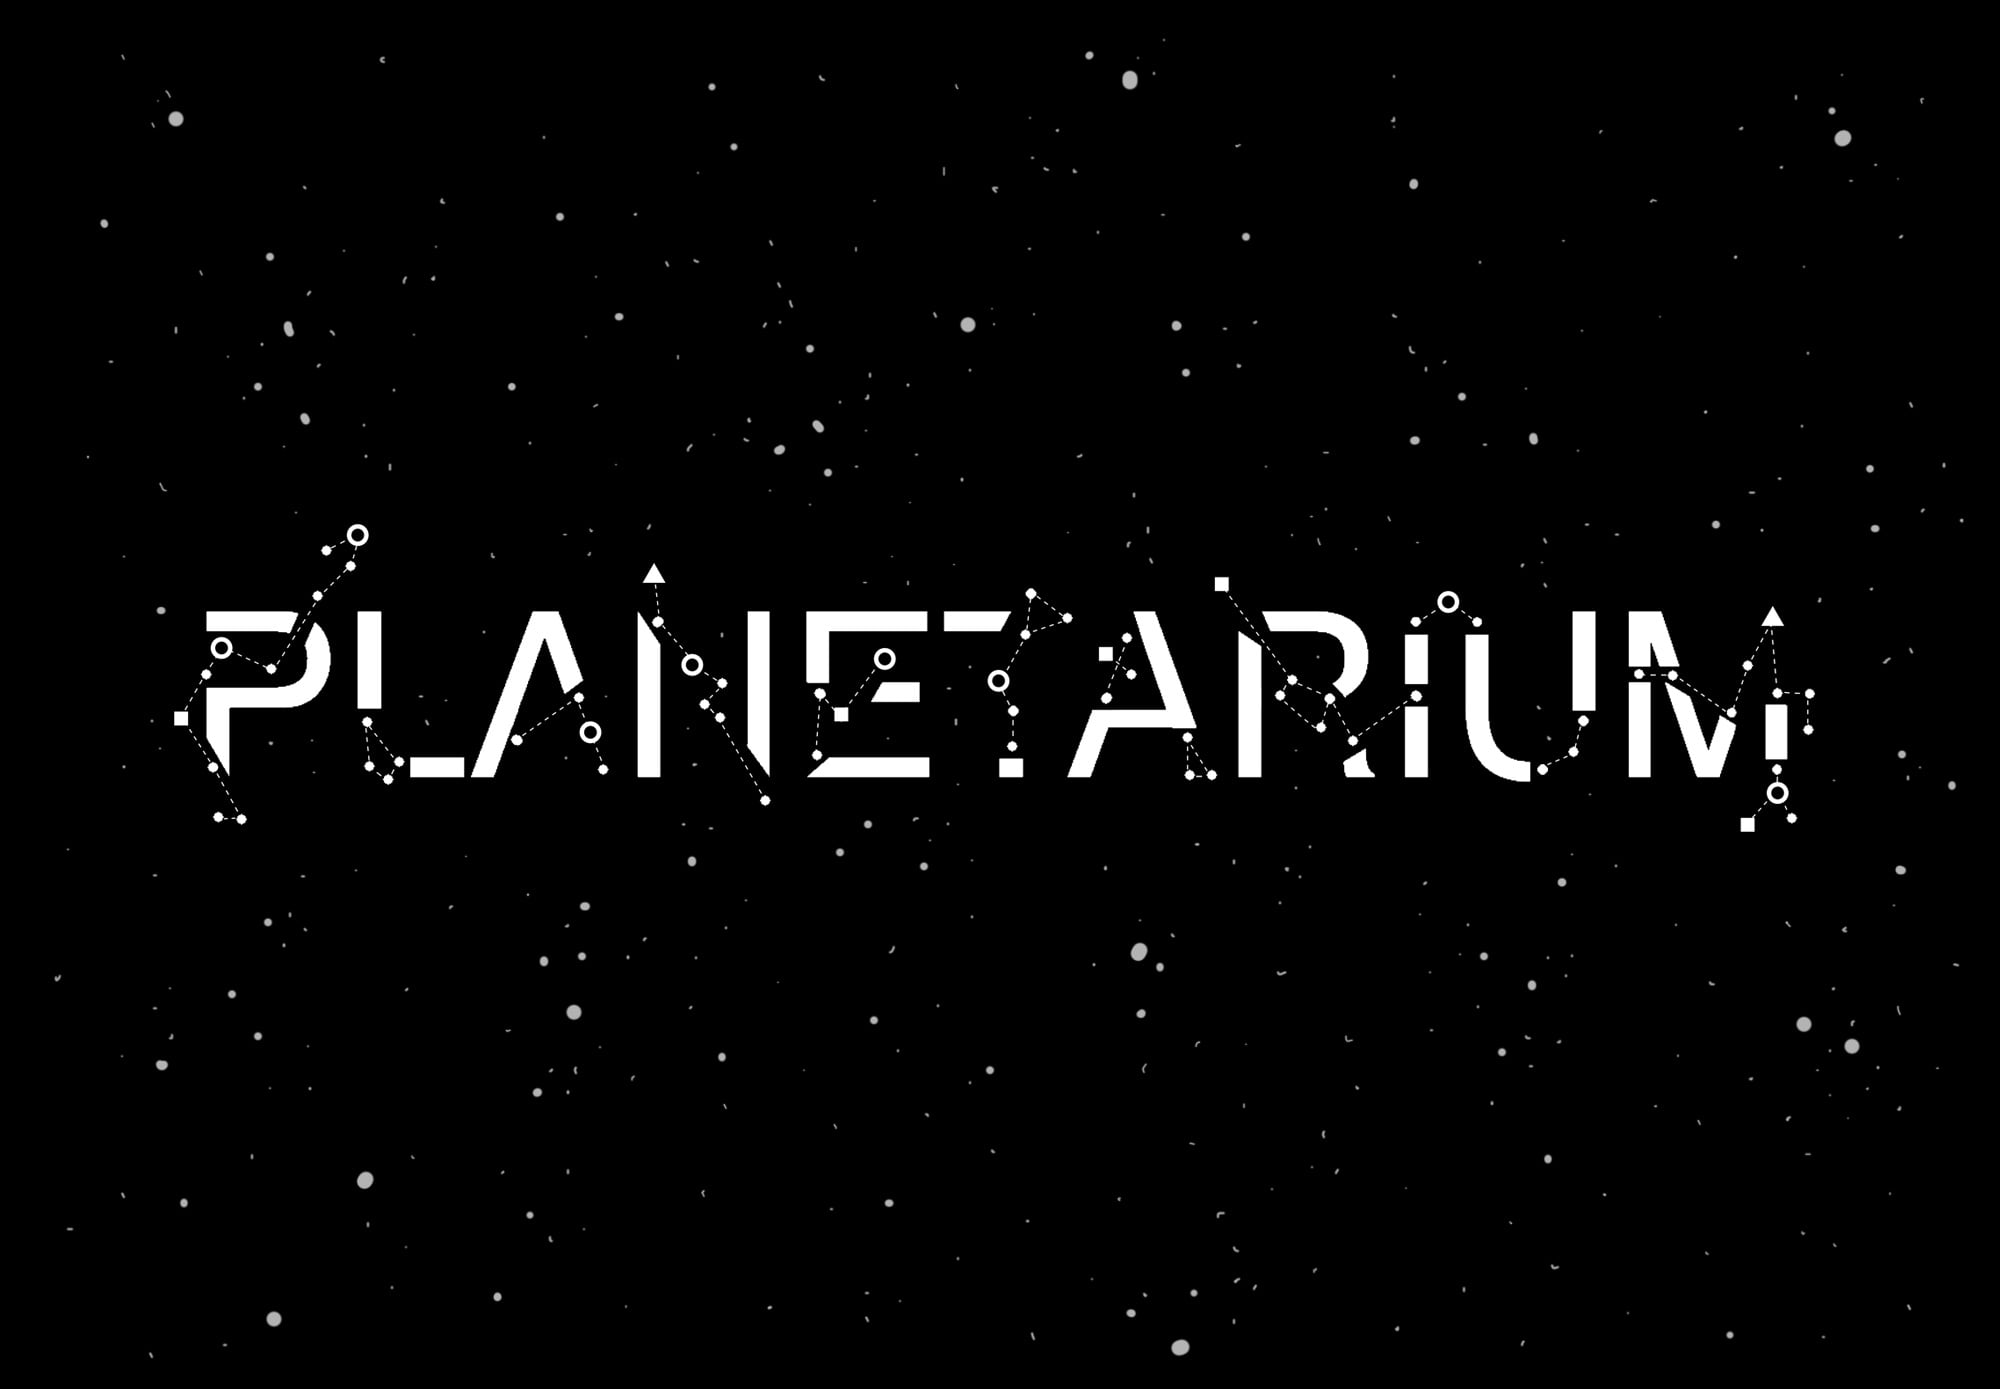 PLANETARIUM: THE EXPERIENCE OF SPACE